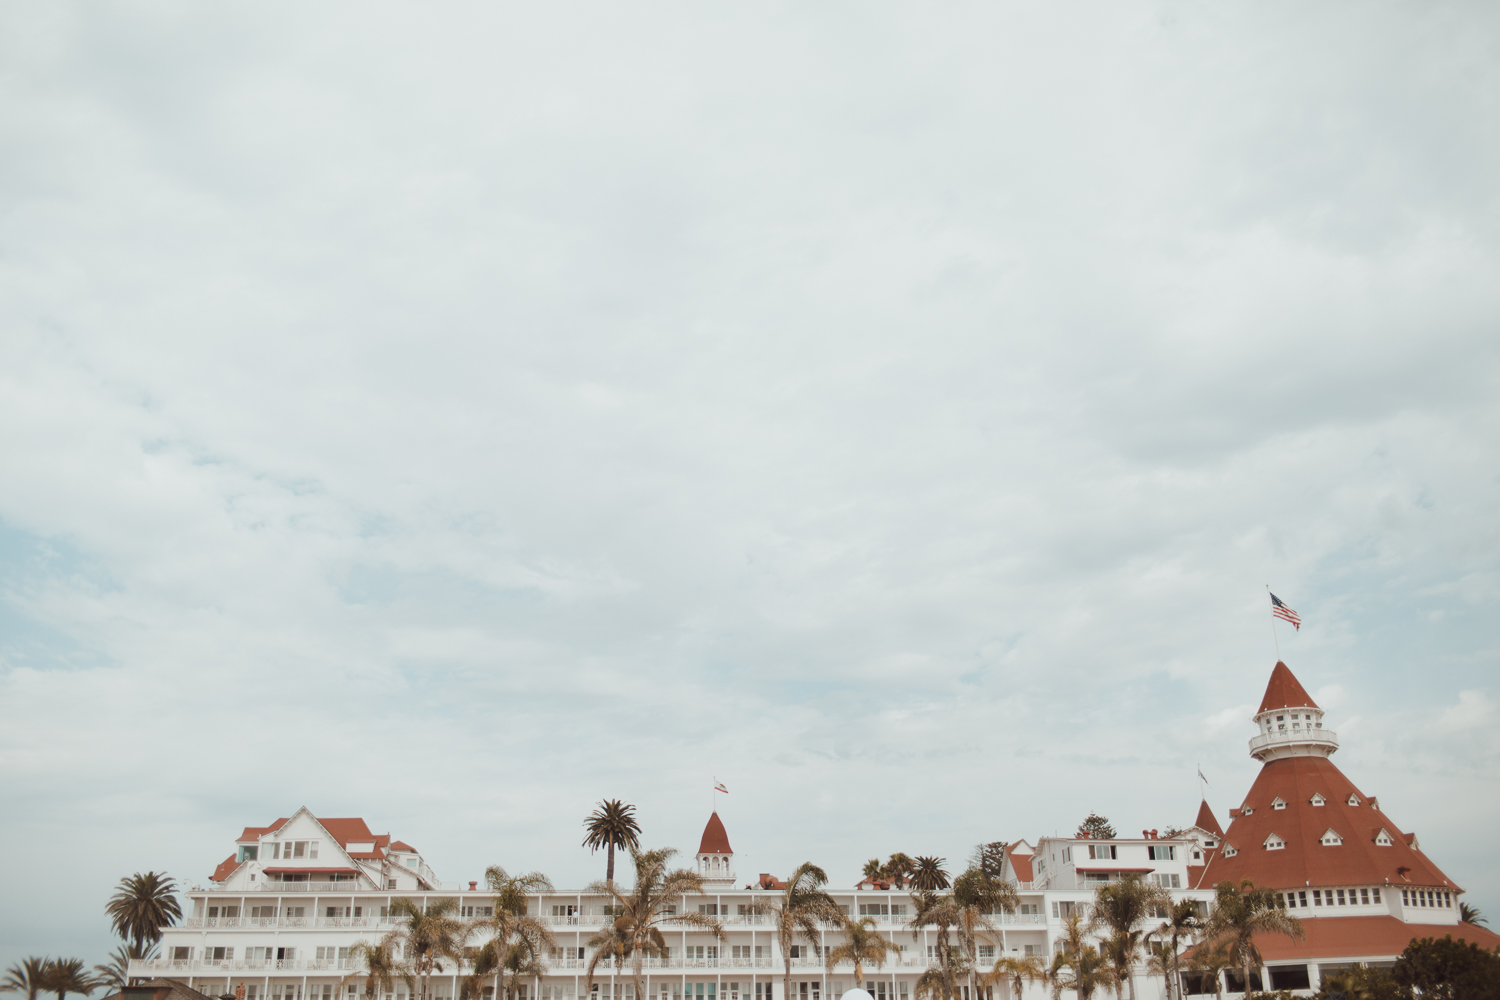 Hotel Del Coronado Travel Blog in San Diego